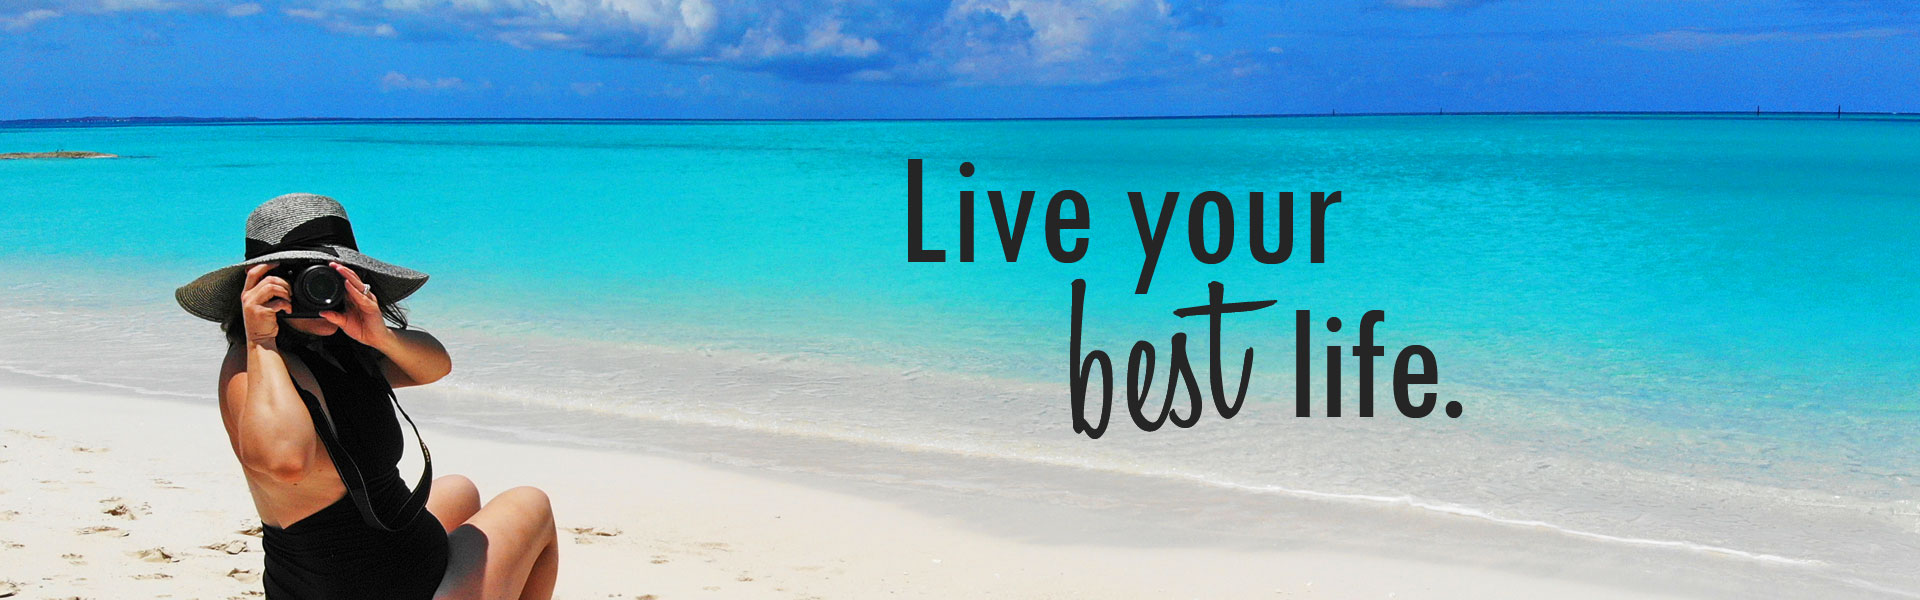 Live your best life - Nikki on perfect white sand beach with camera